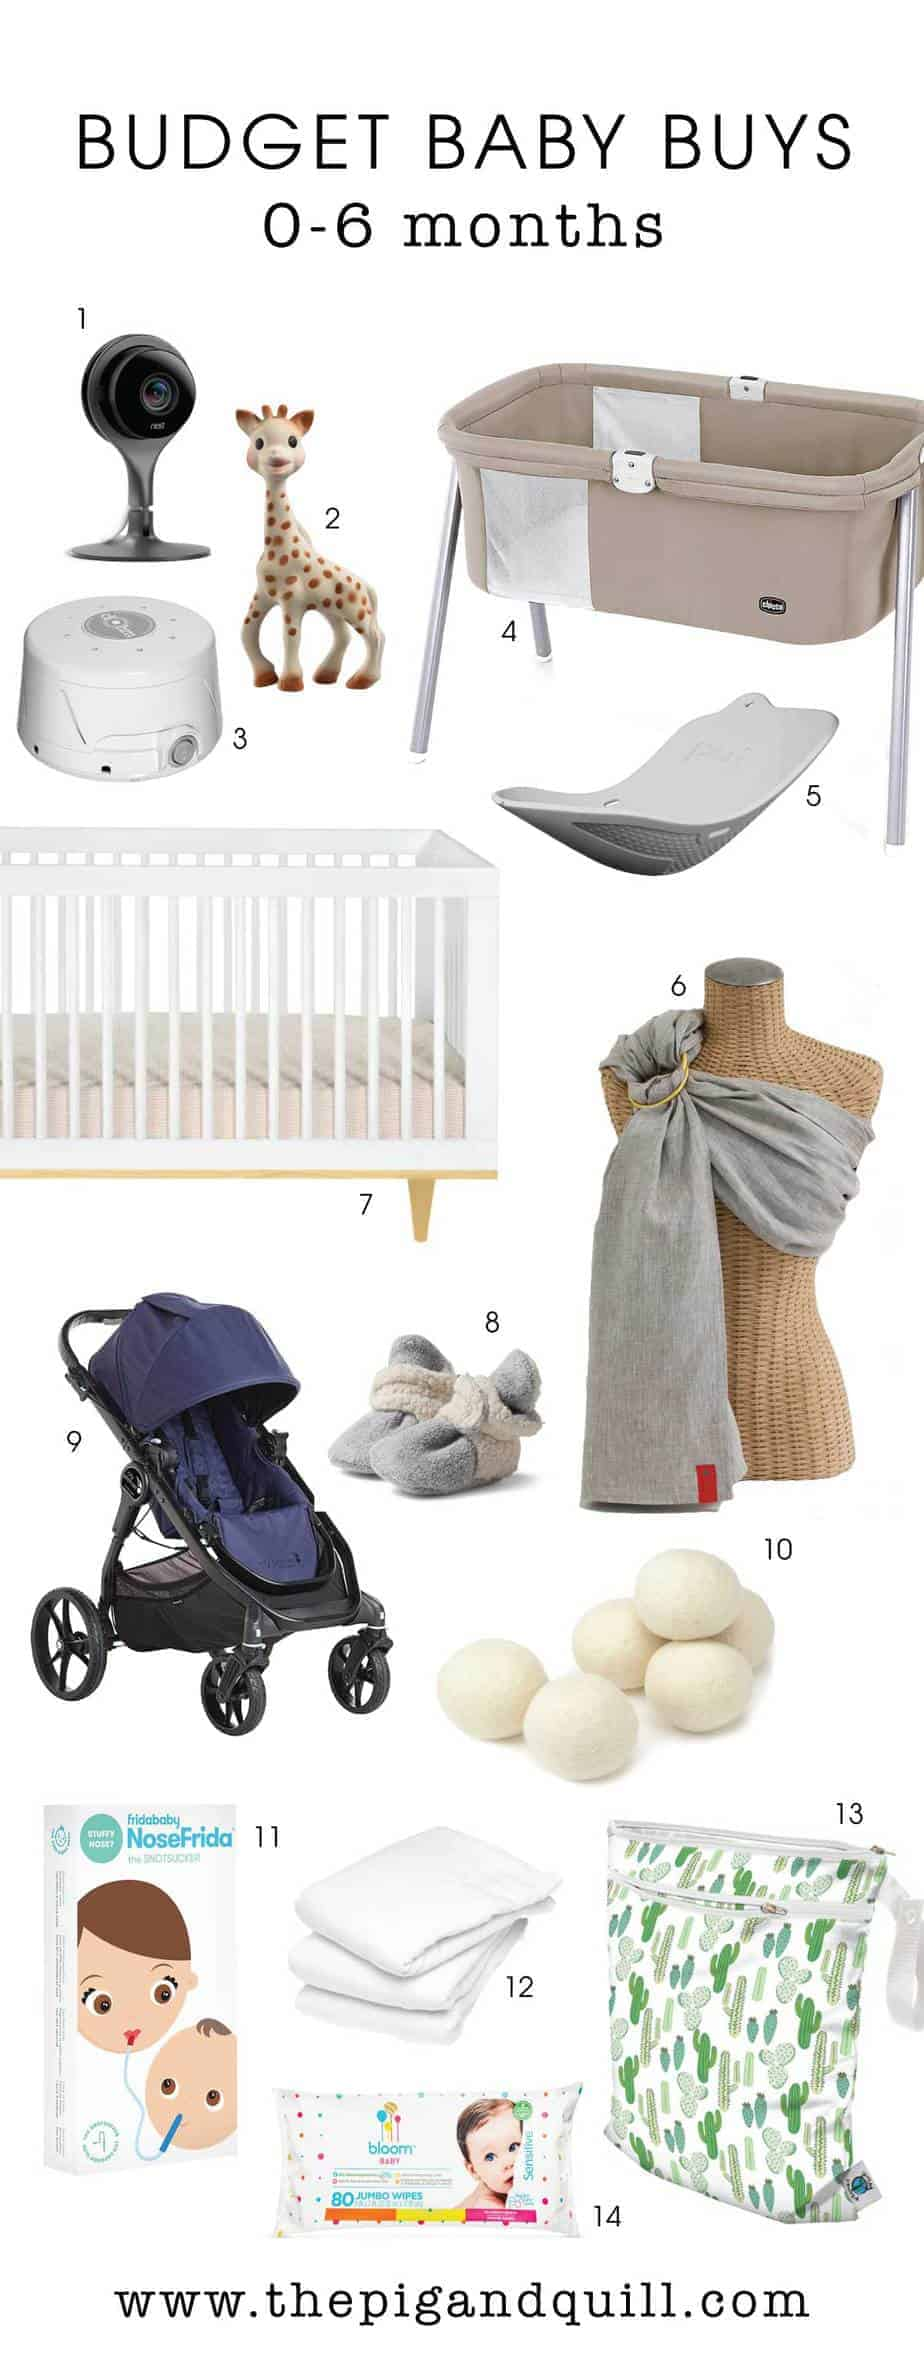 Budget Baby Buys for 0-6 Months (via thepigandquill.com)